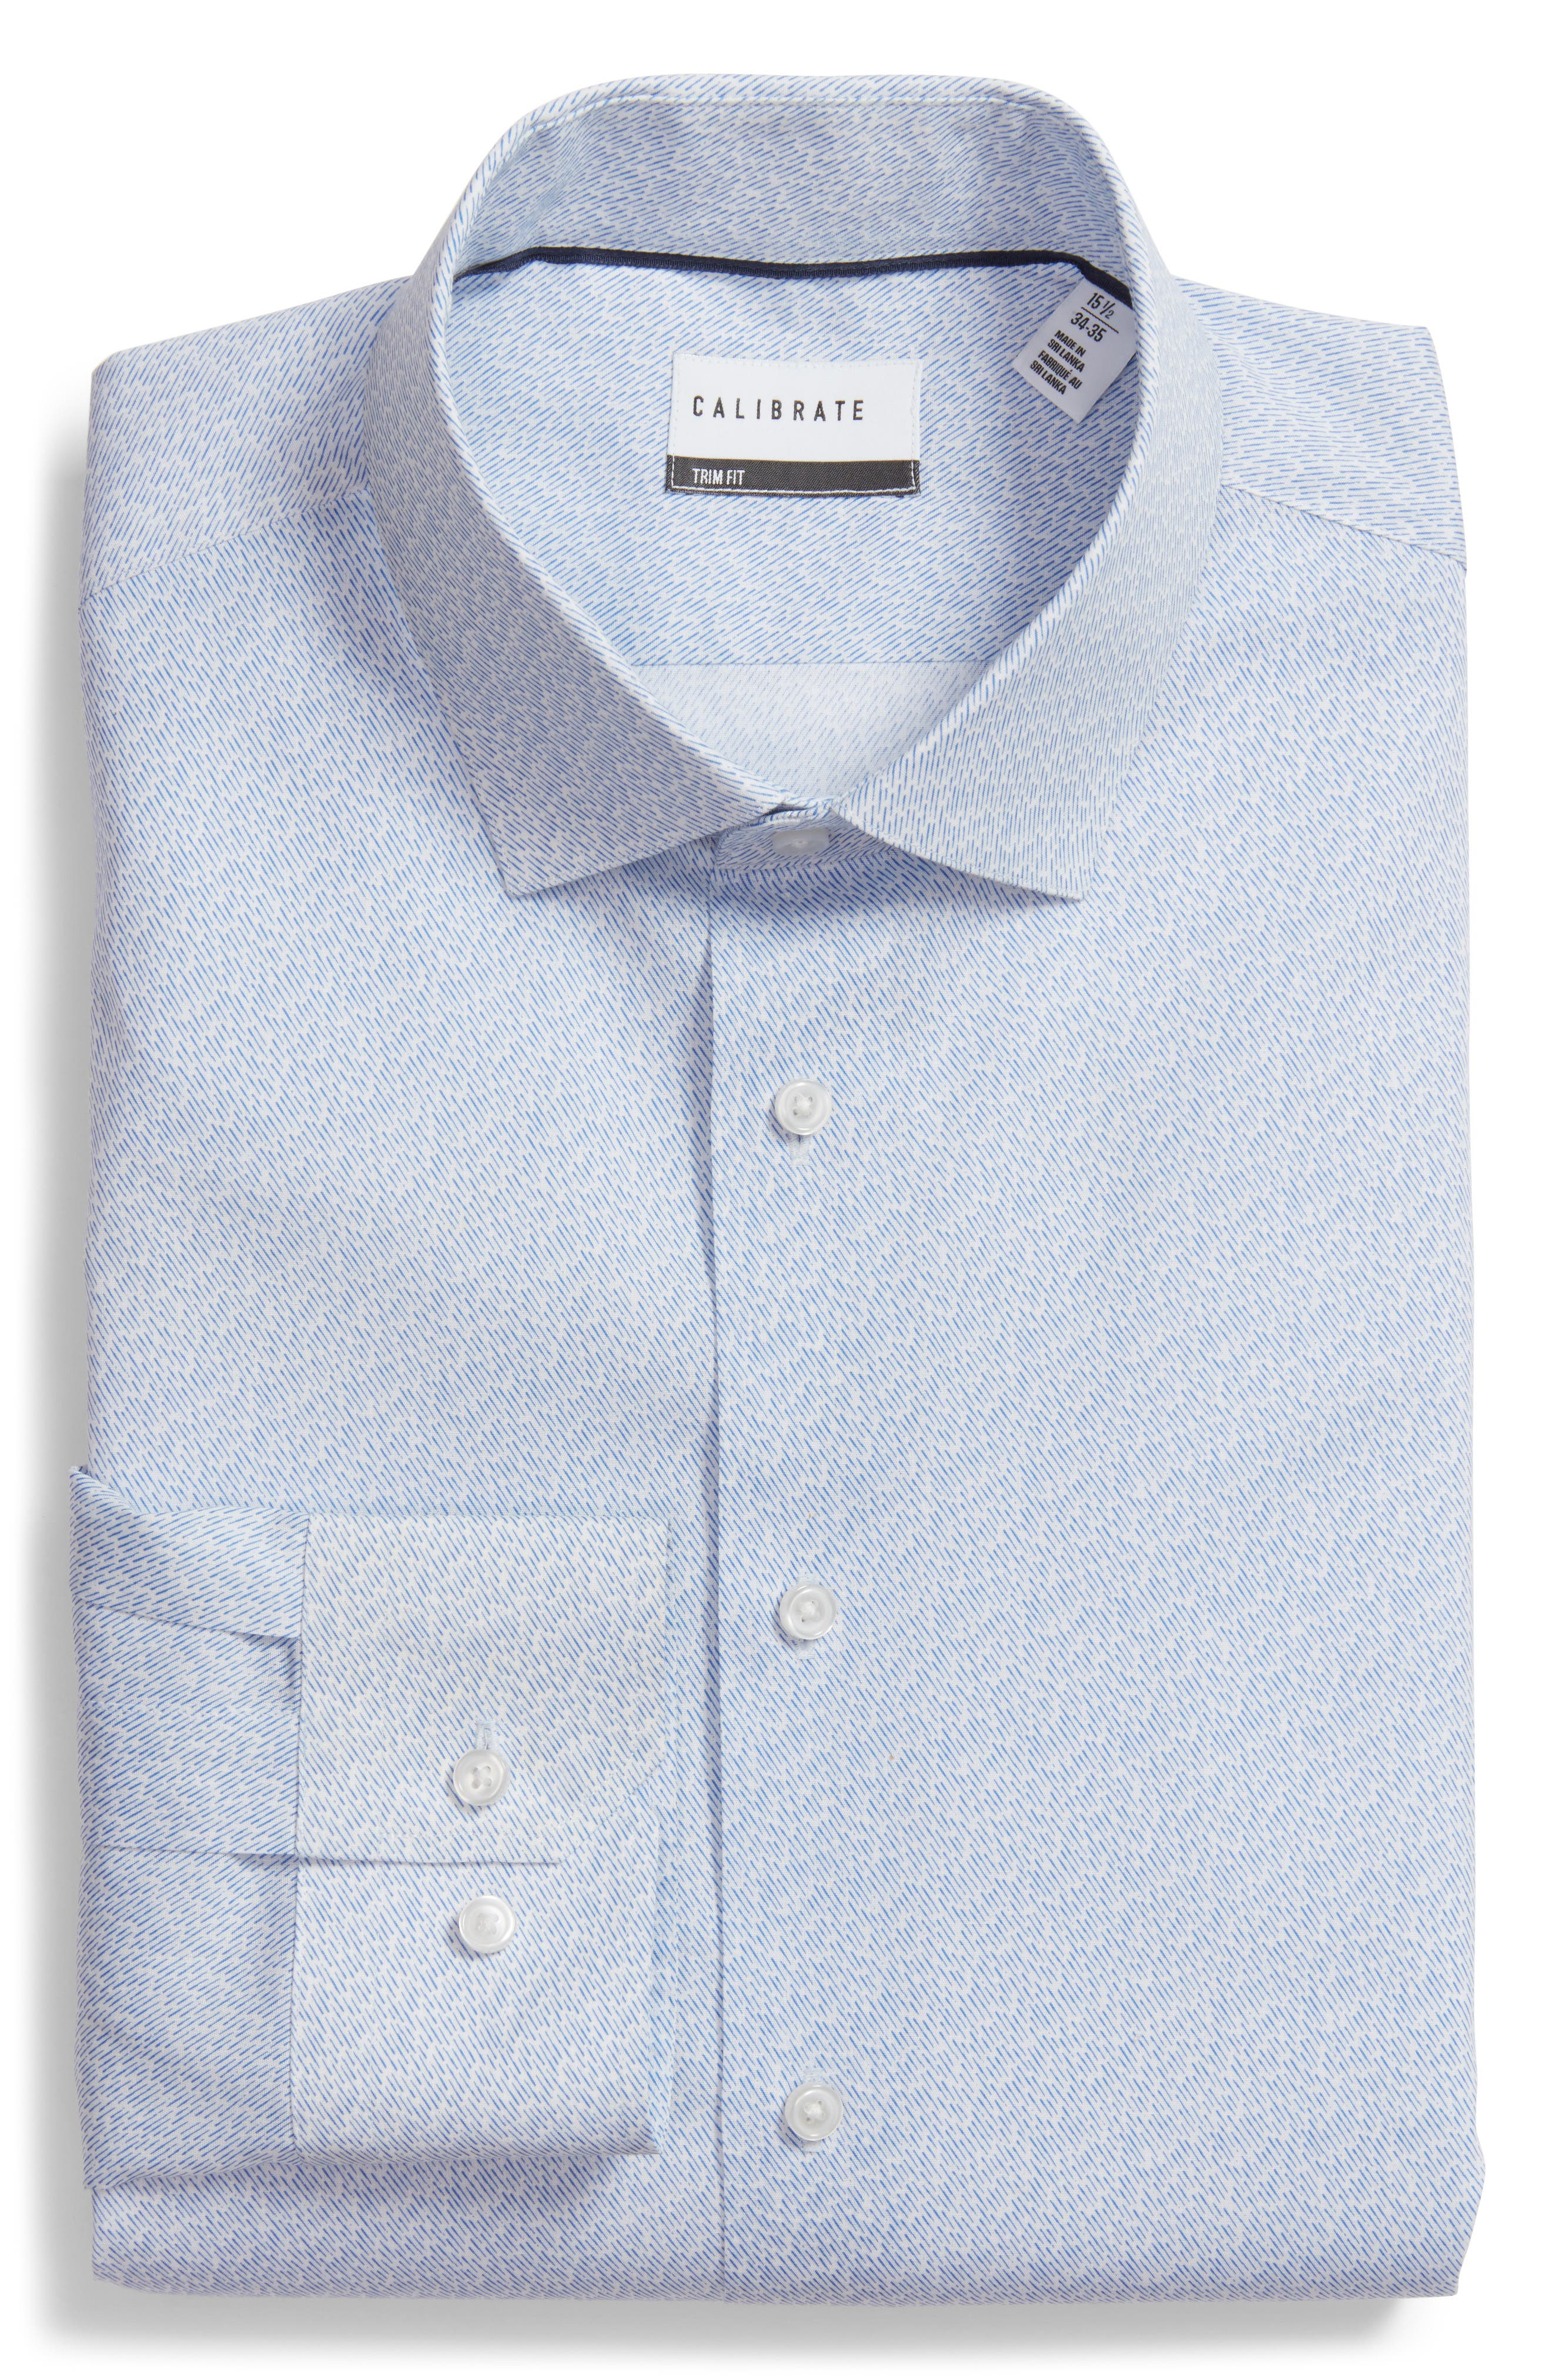 Trim Fit Print Dress Shirt,                         Main,                         color, Blue Lake